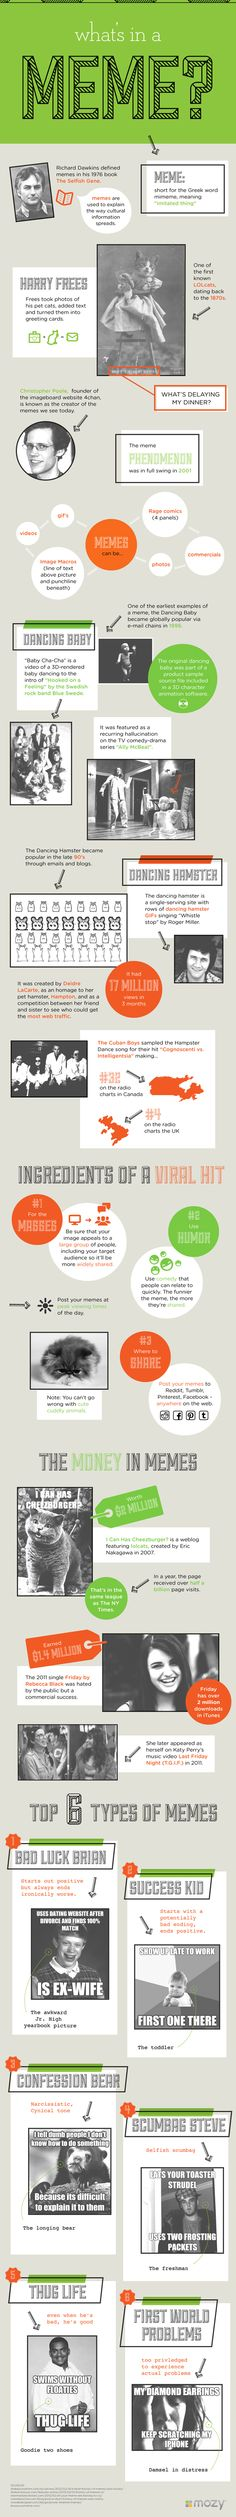 Are memes a mystery? What's their history? Can you create a meme and make it go viral? If you're confused about memes, check this infographic for some answers! Memes are simply social media visuals that hit a cultural nerve, and go viral. Marketing Digital, Content Marketing, Internet Marketing, Online Marketing, Social Media Marketing, Marketing Poster, Business Marketing, Marketing Trends, Le Social